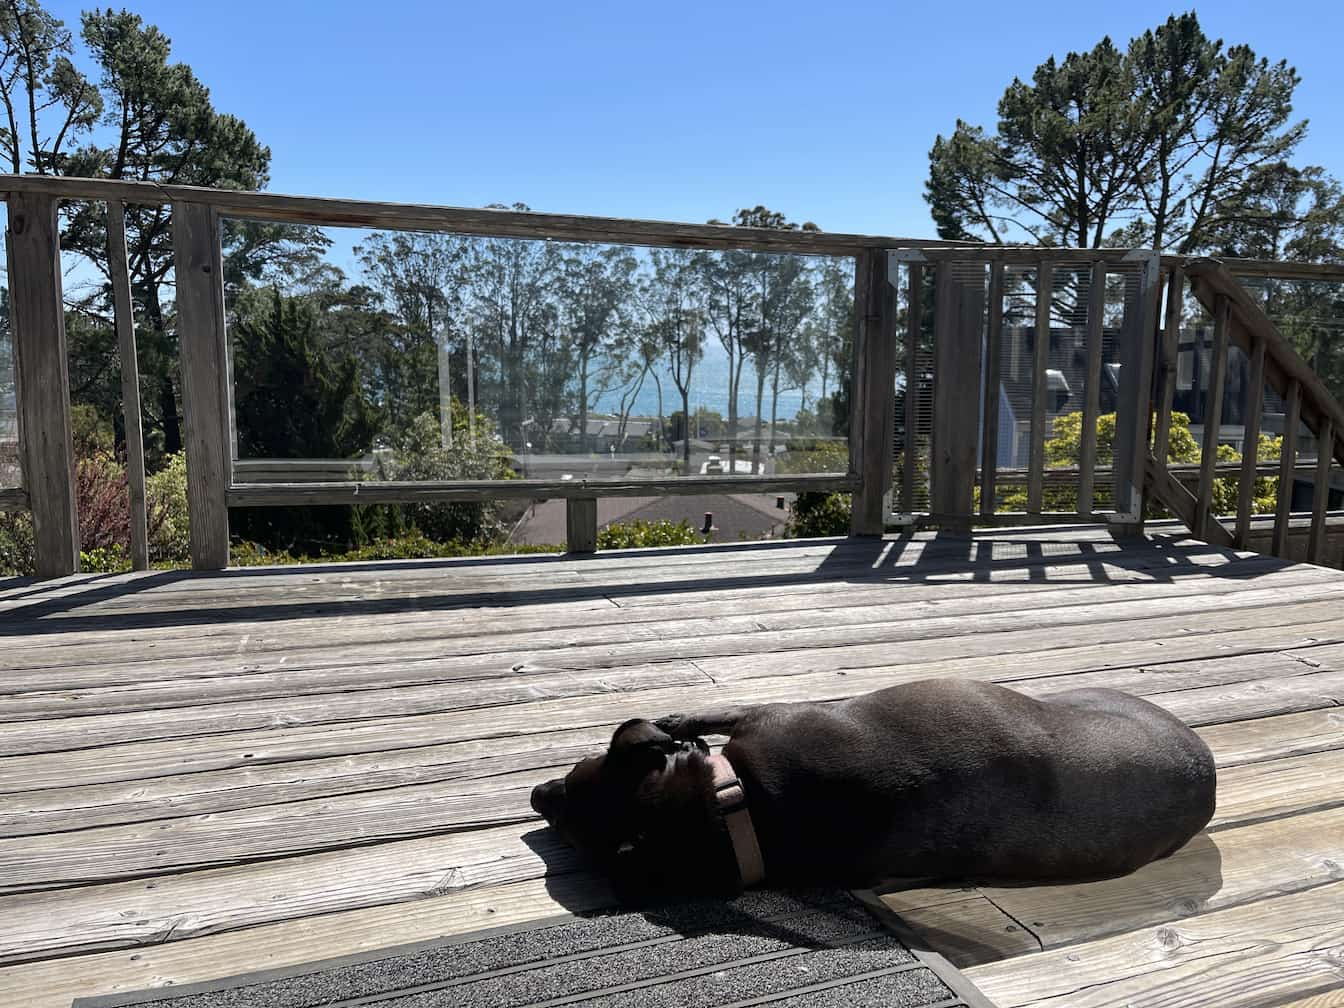 Cleo asleep on the deck with the Pacific ocean in the distance